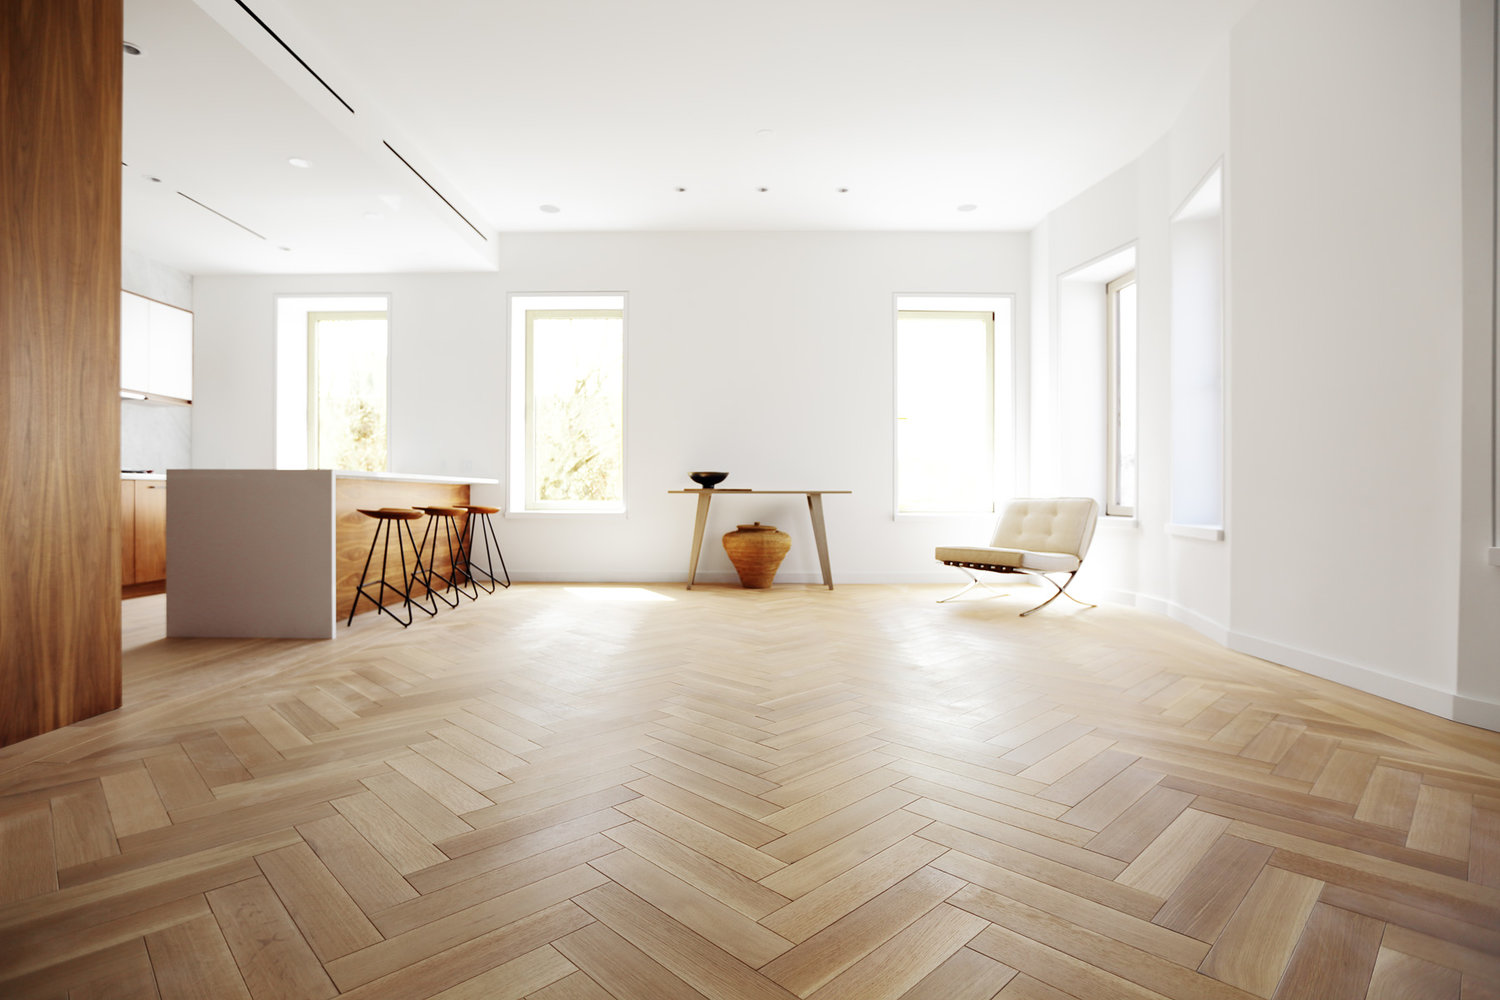 M a d e r a simply wood floors designed by nature simply wood floors designed by nature ppazfo